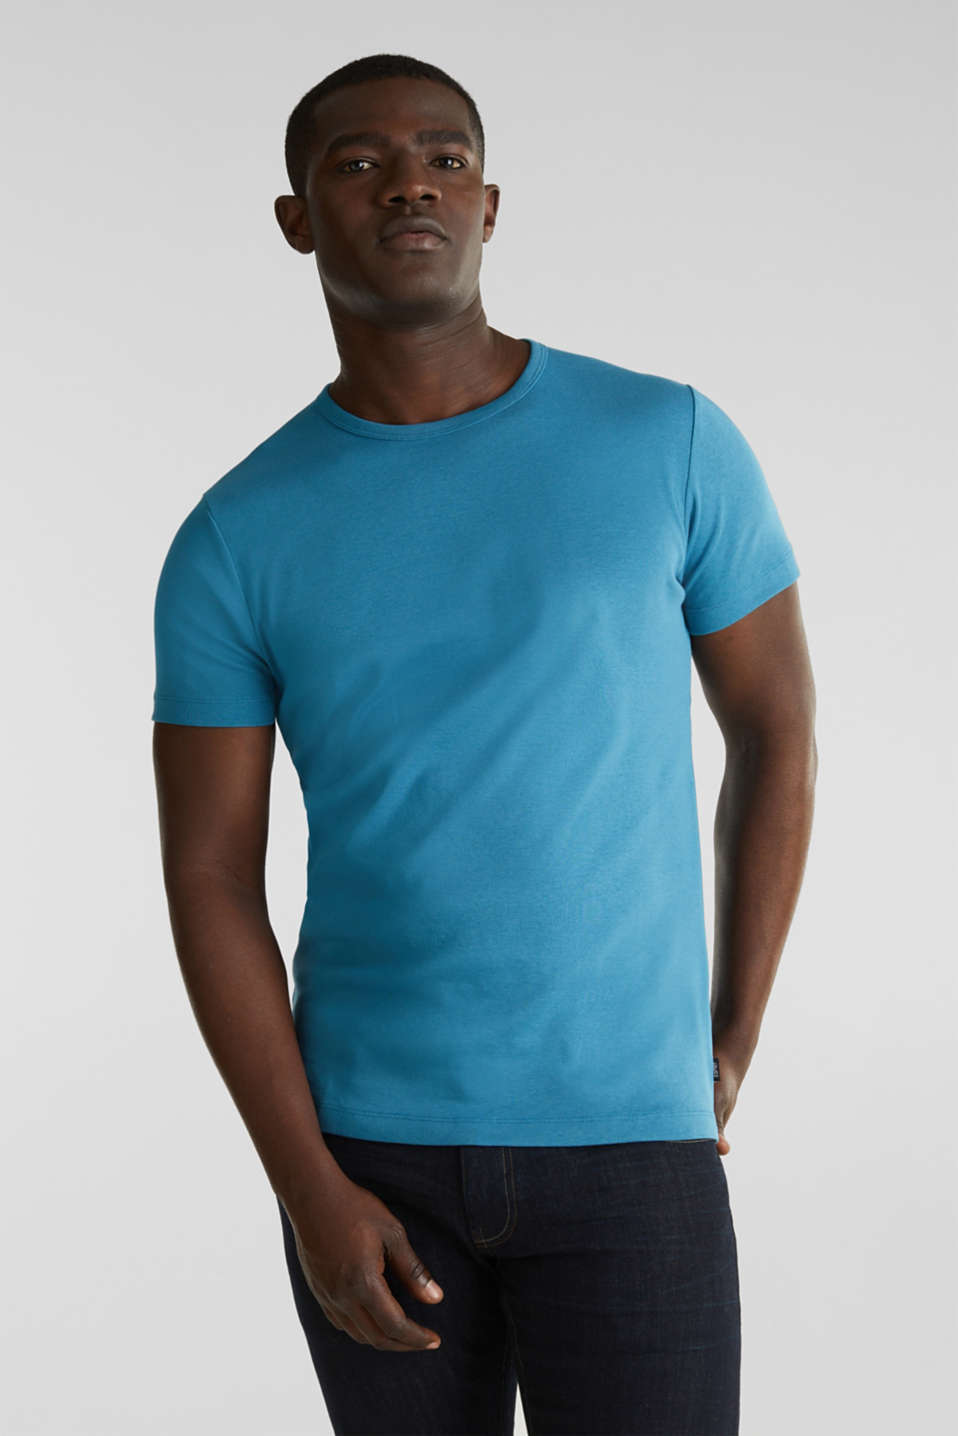 Esprit - Ribbed jersey top made of 100% cotton